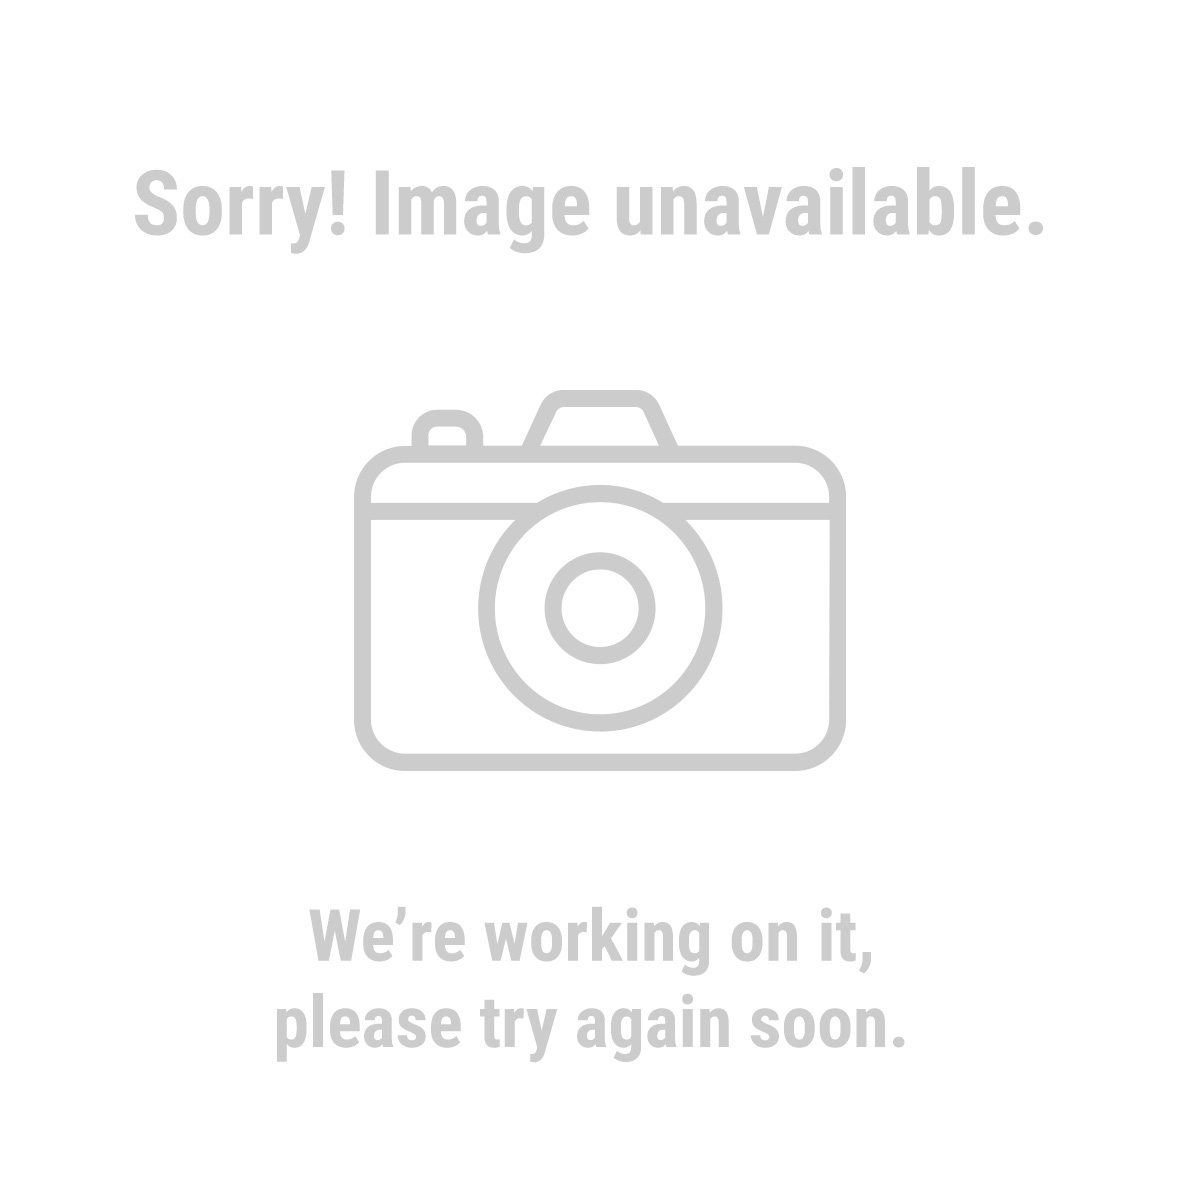 StikTek 63242 50 Yds. x 1.88 in. Cloth Back Silver Duct Tape